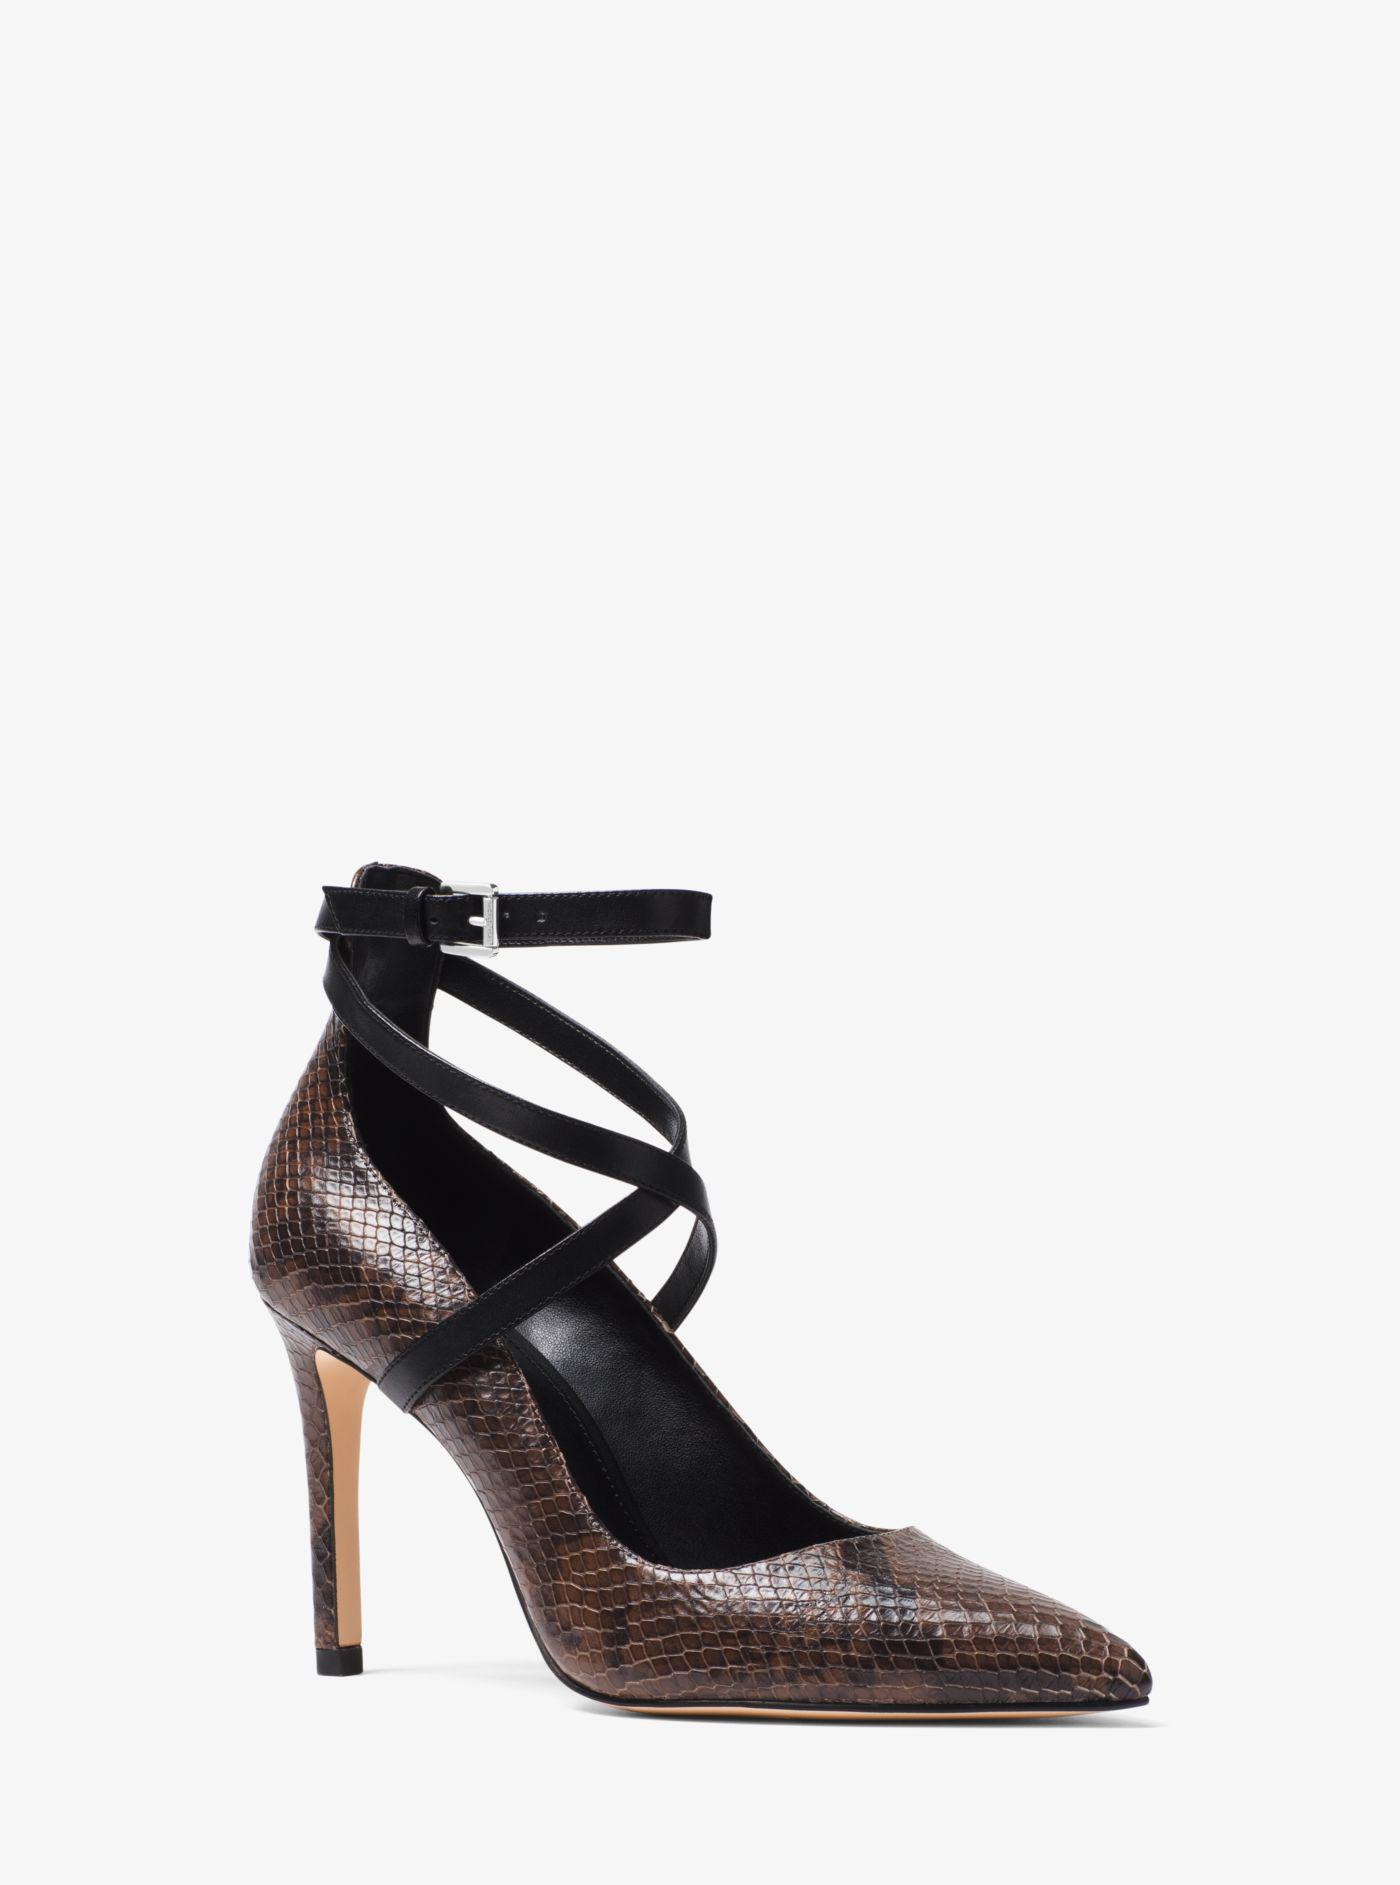 e57c339215a9 Lyst - Michael Kors Jeannie Snake-embossed Leather Pump in Black